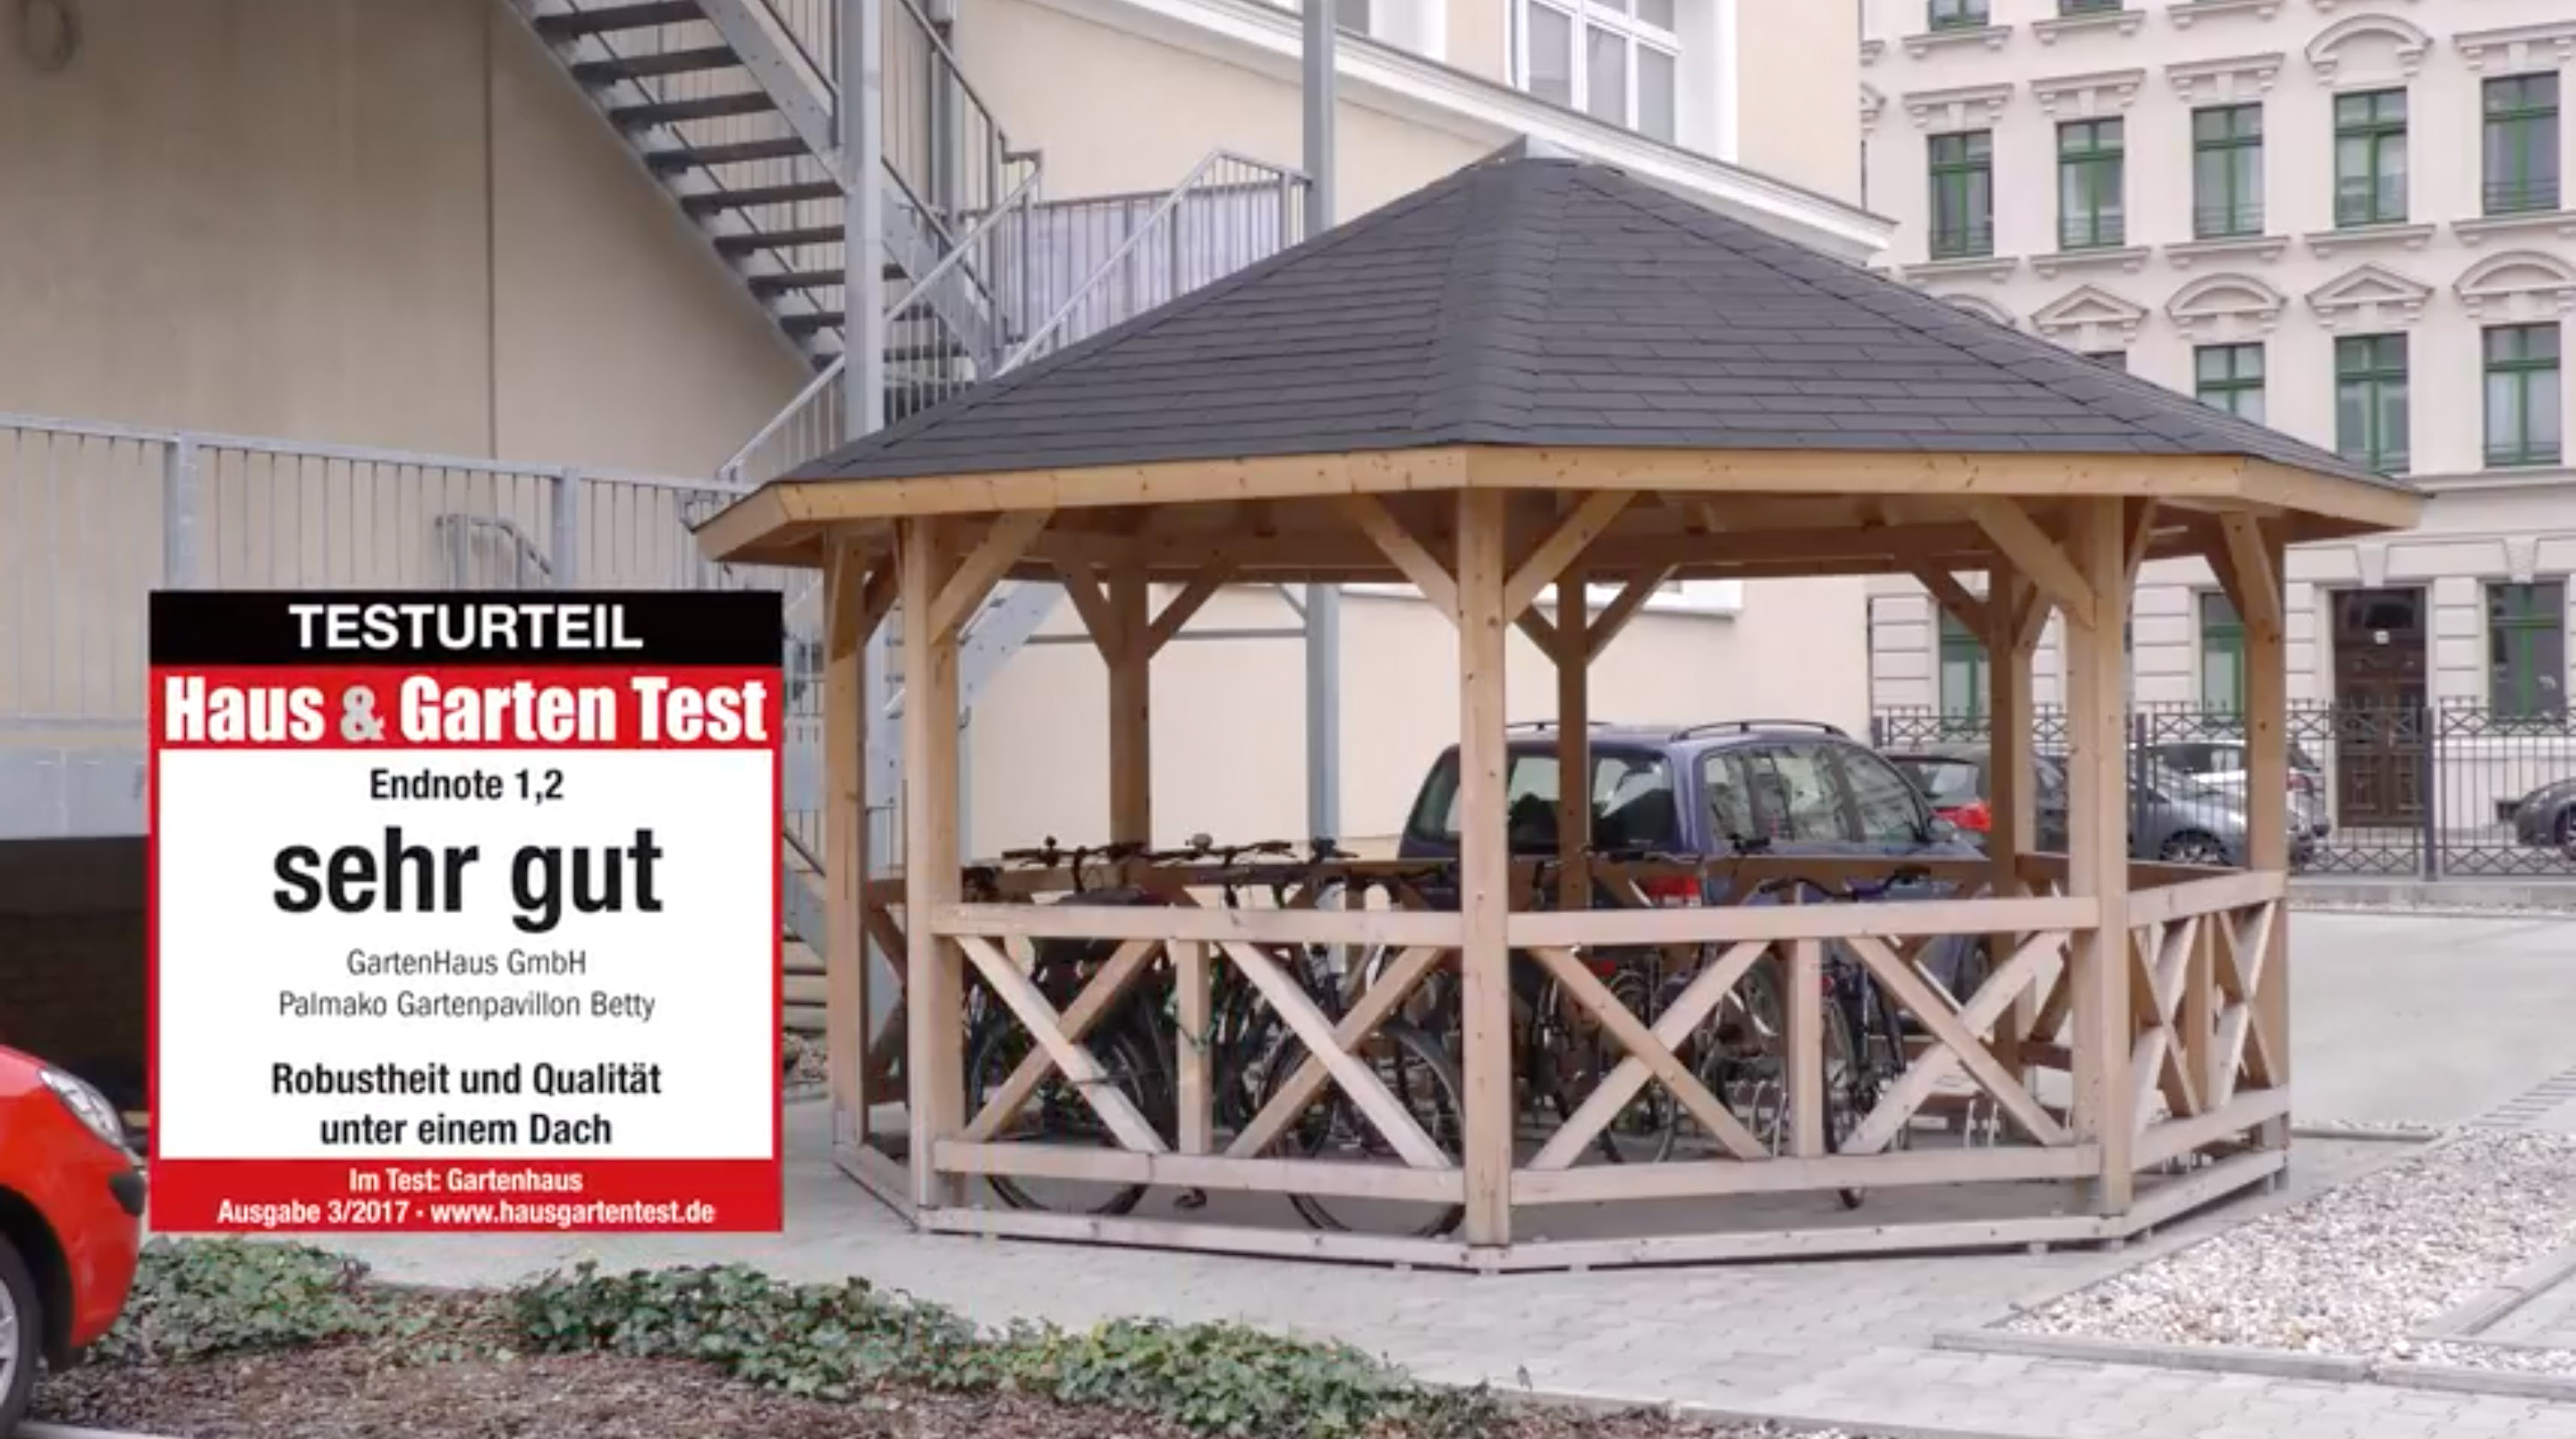 testvideo aufbau palmako gartenpavillon betty haus garten test. Black Bedroom Furniture Sets. Home Design Ideas